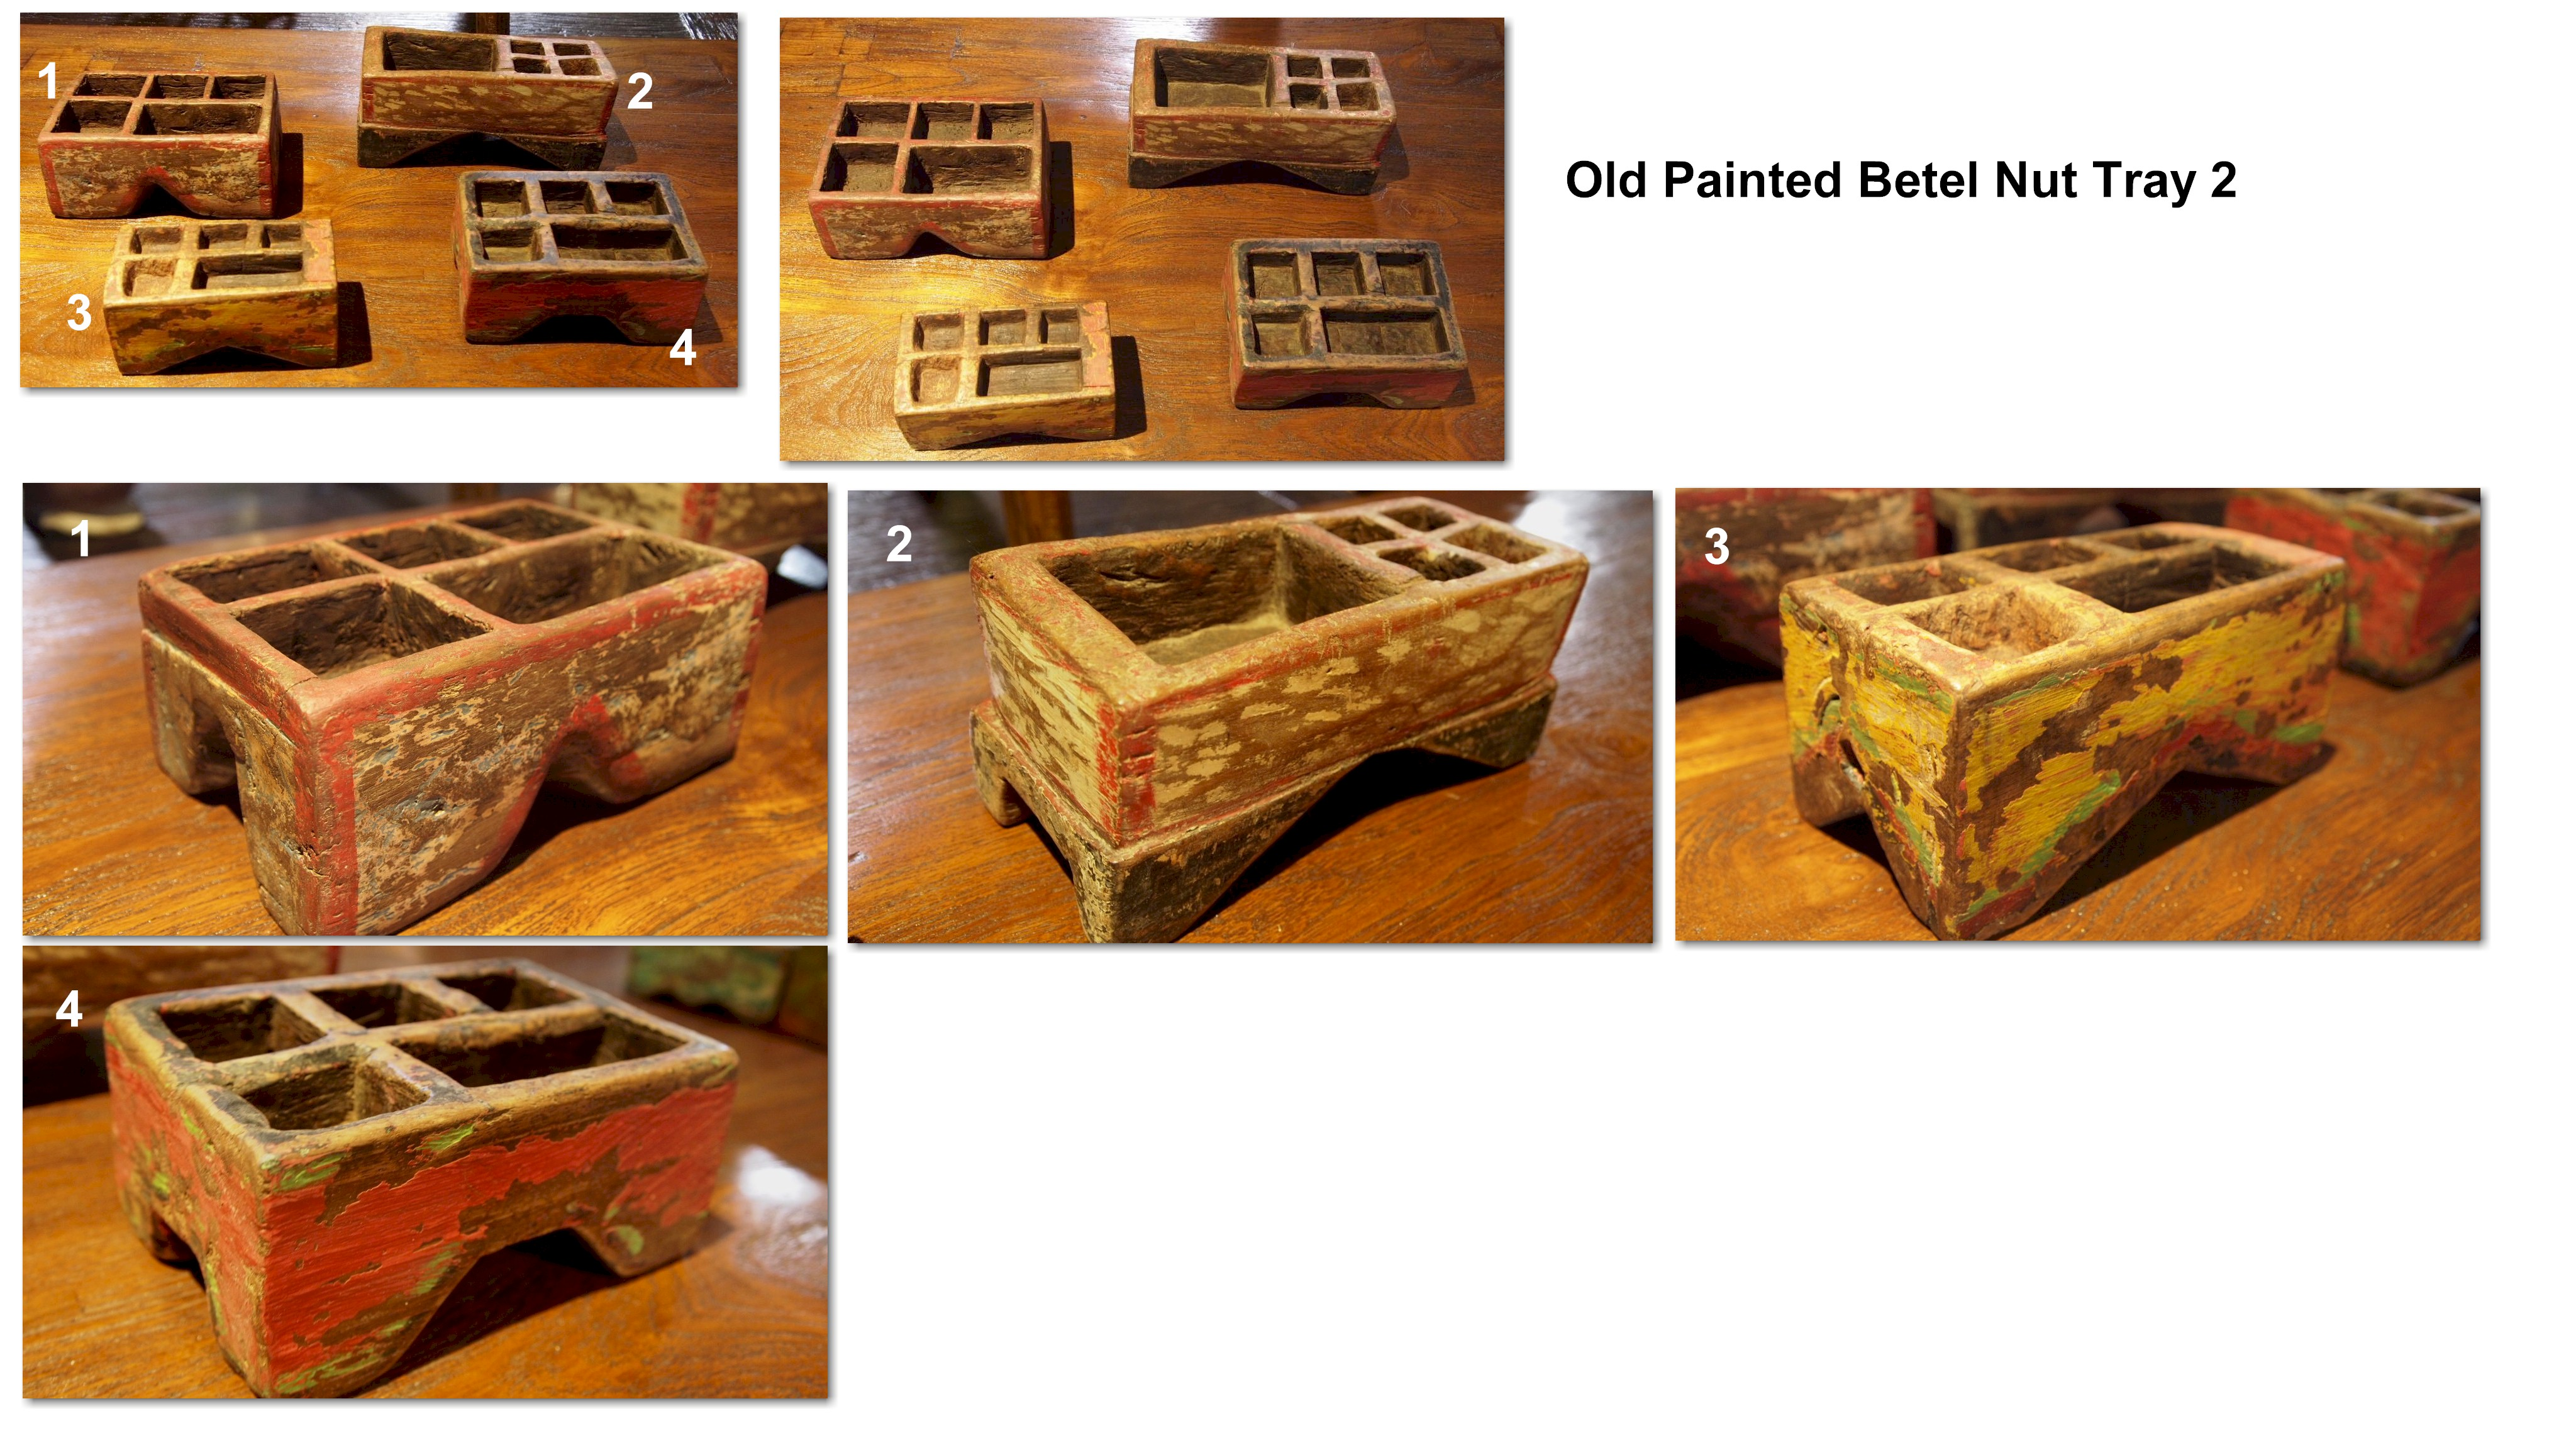 Old Painted Betel Nut Tray 2